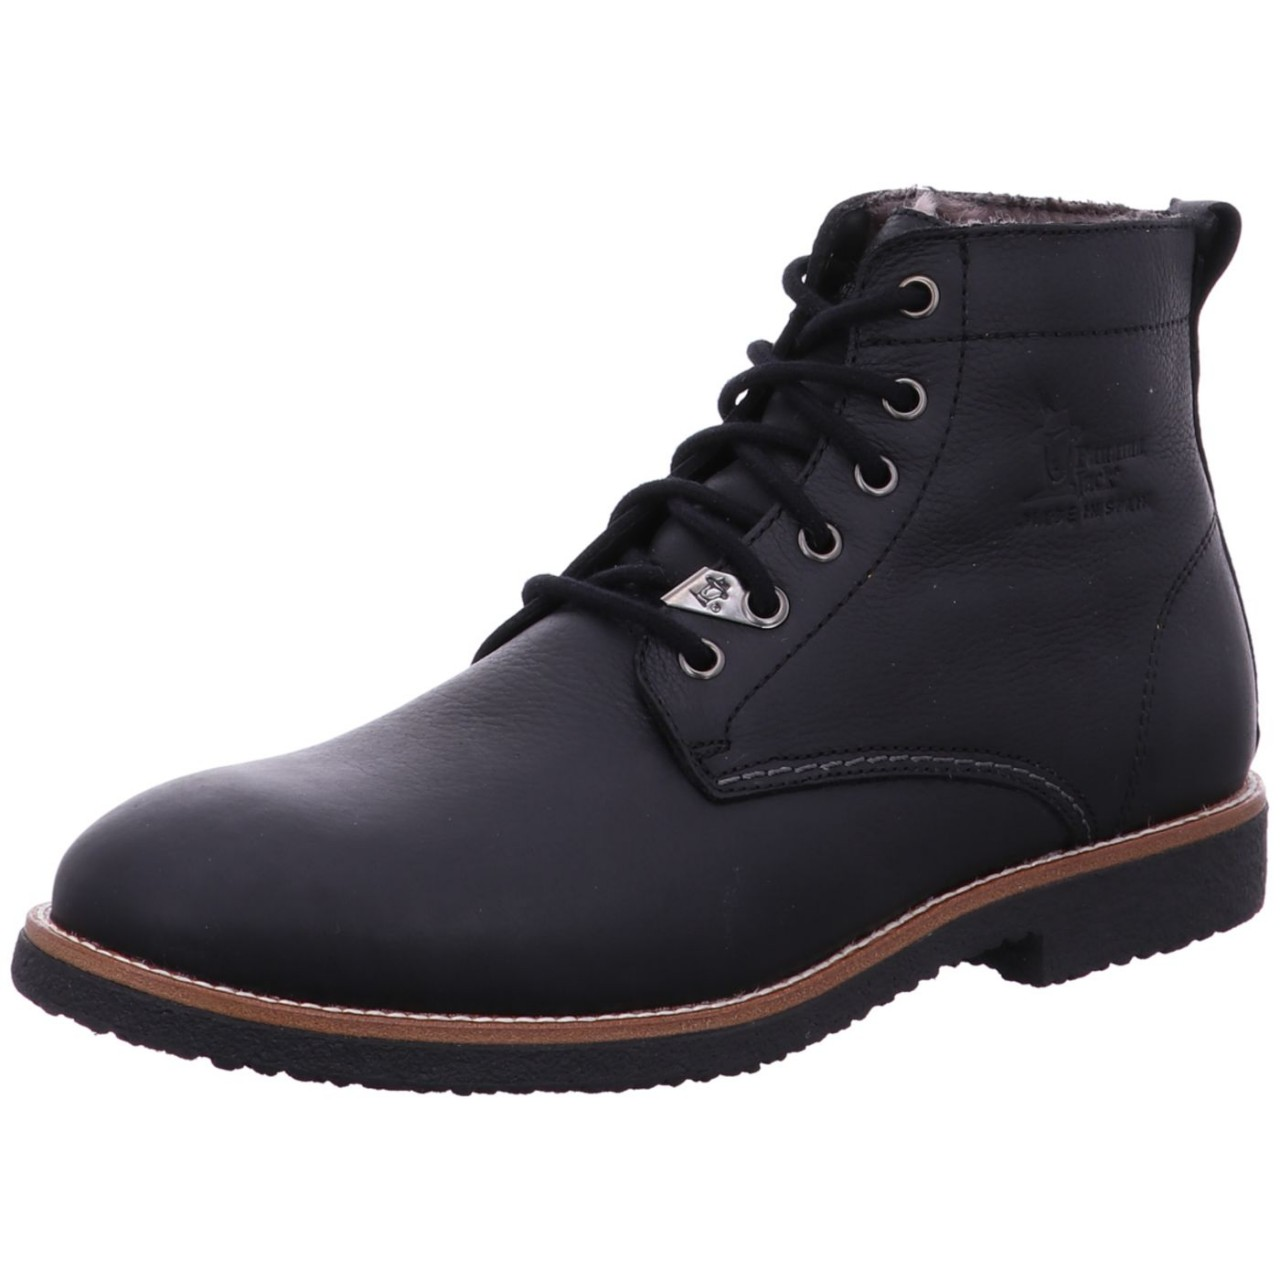 Panama Jack Boot Glasgow Igloo Schwarz Glasgow Igloo C3 black